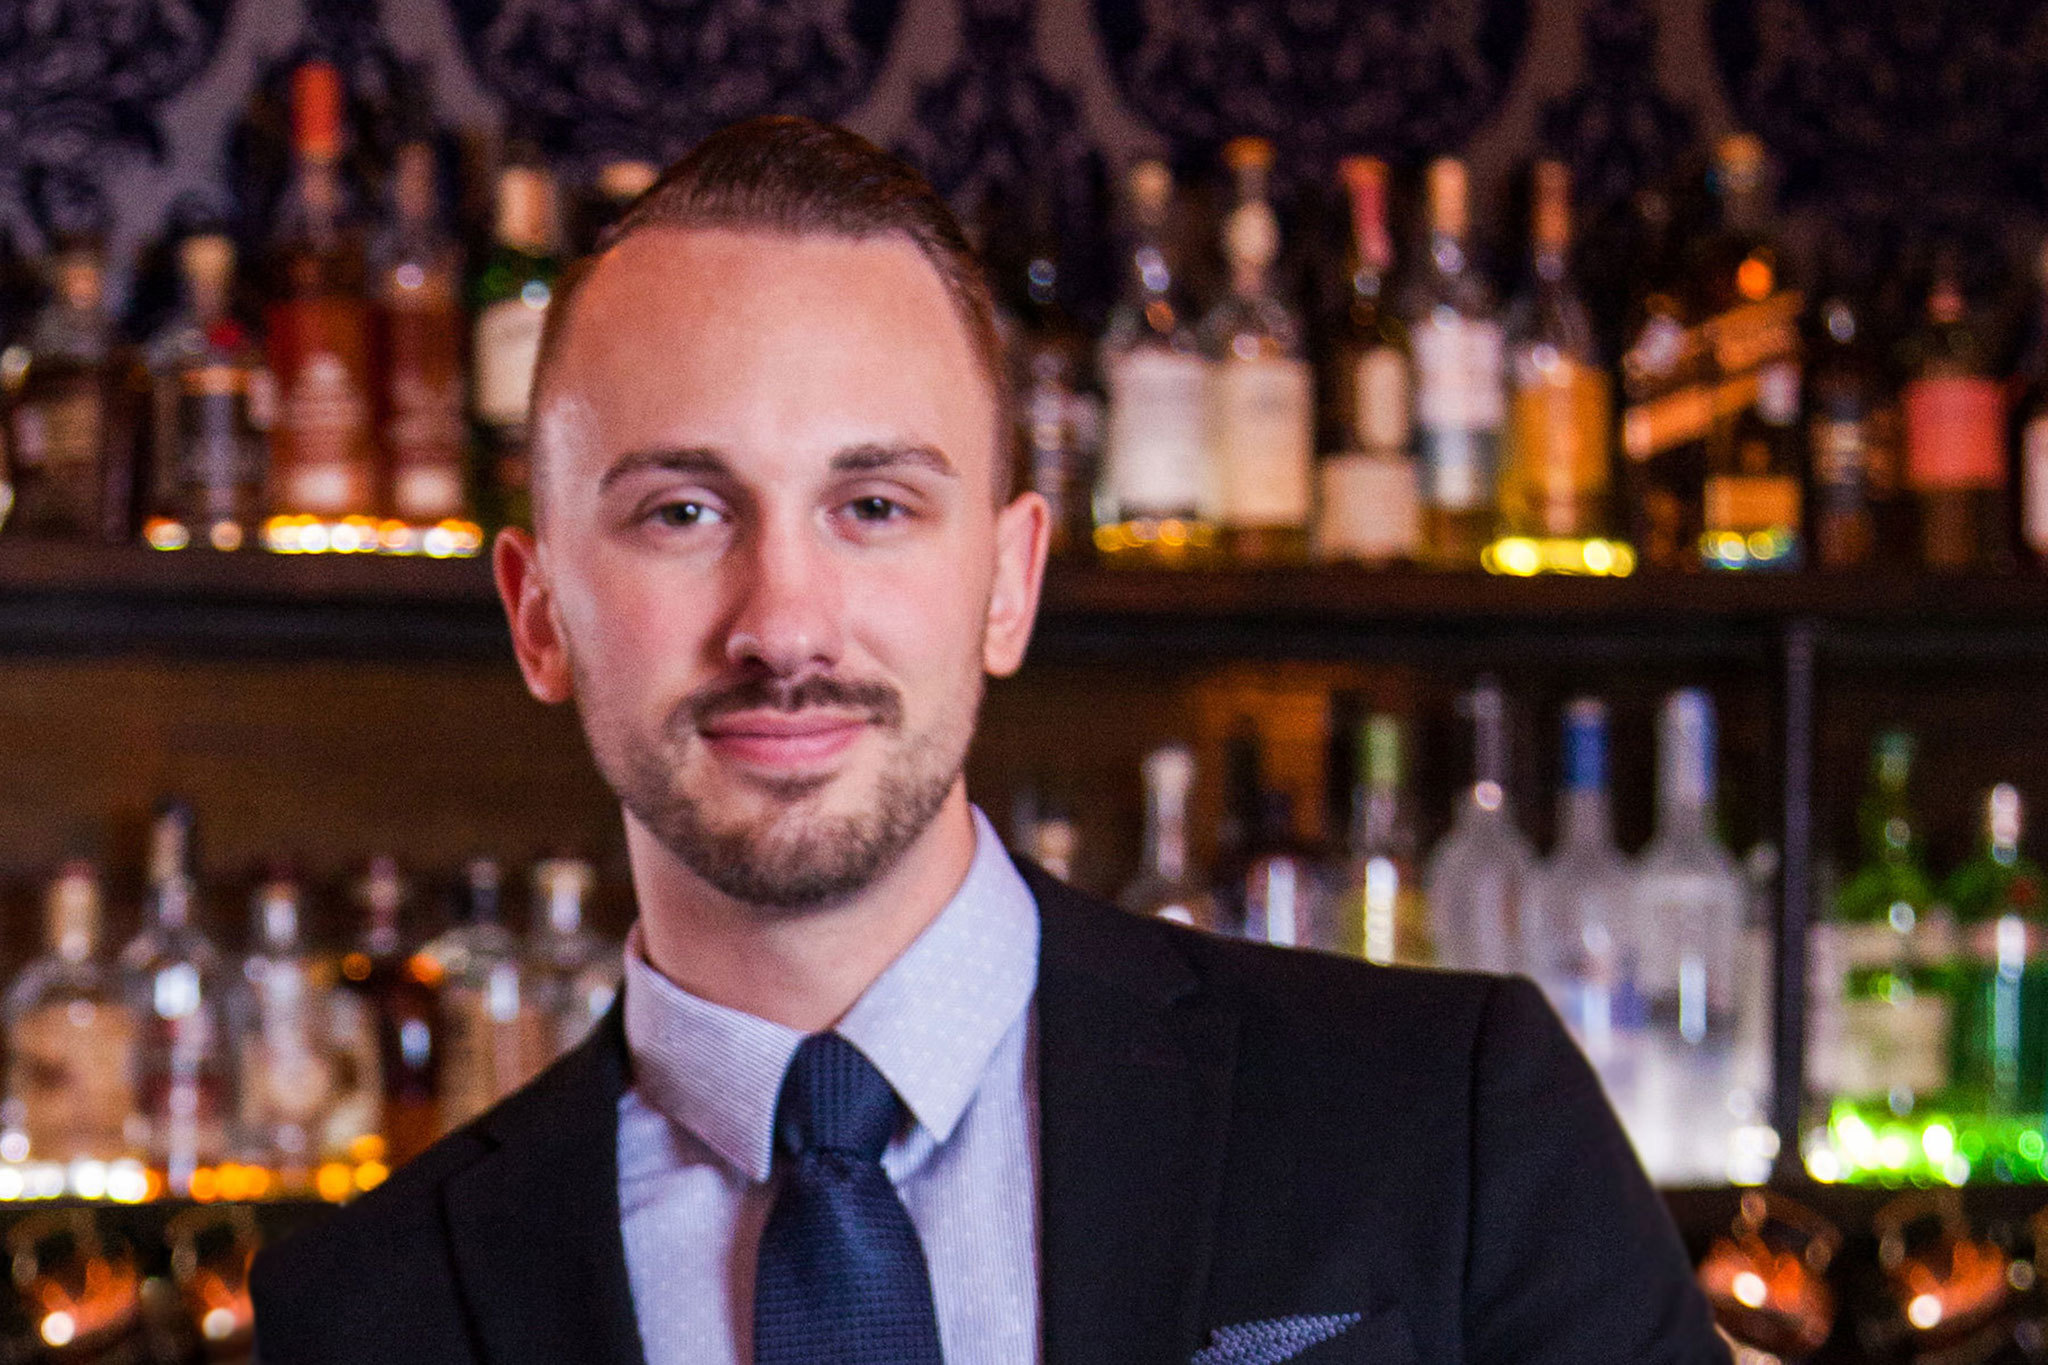 Justin Lavenue, co-owner at The Roosevelt Room